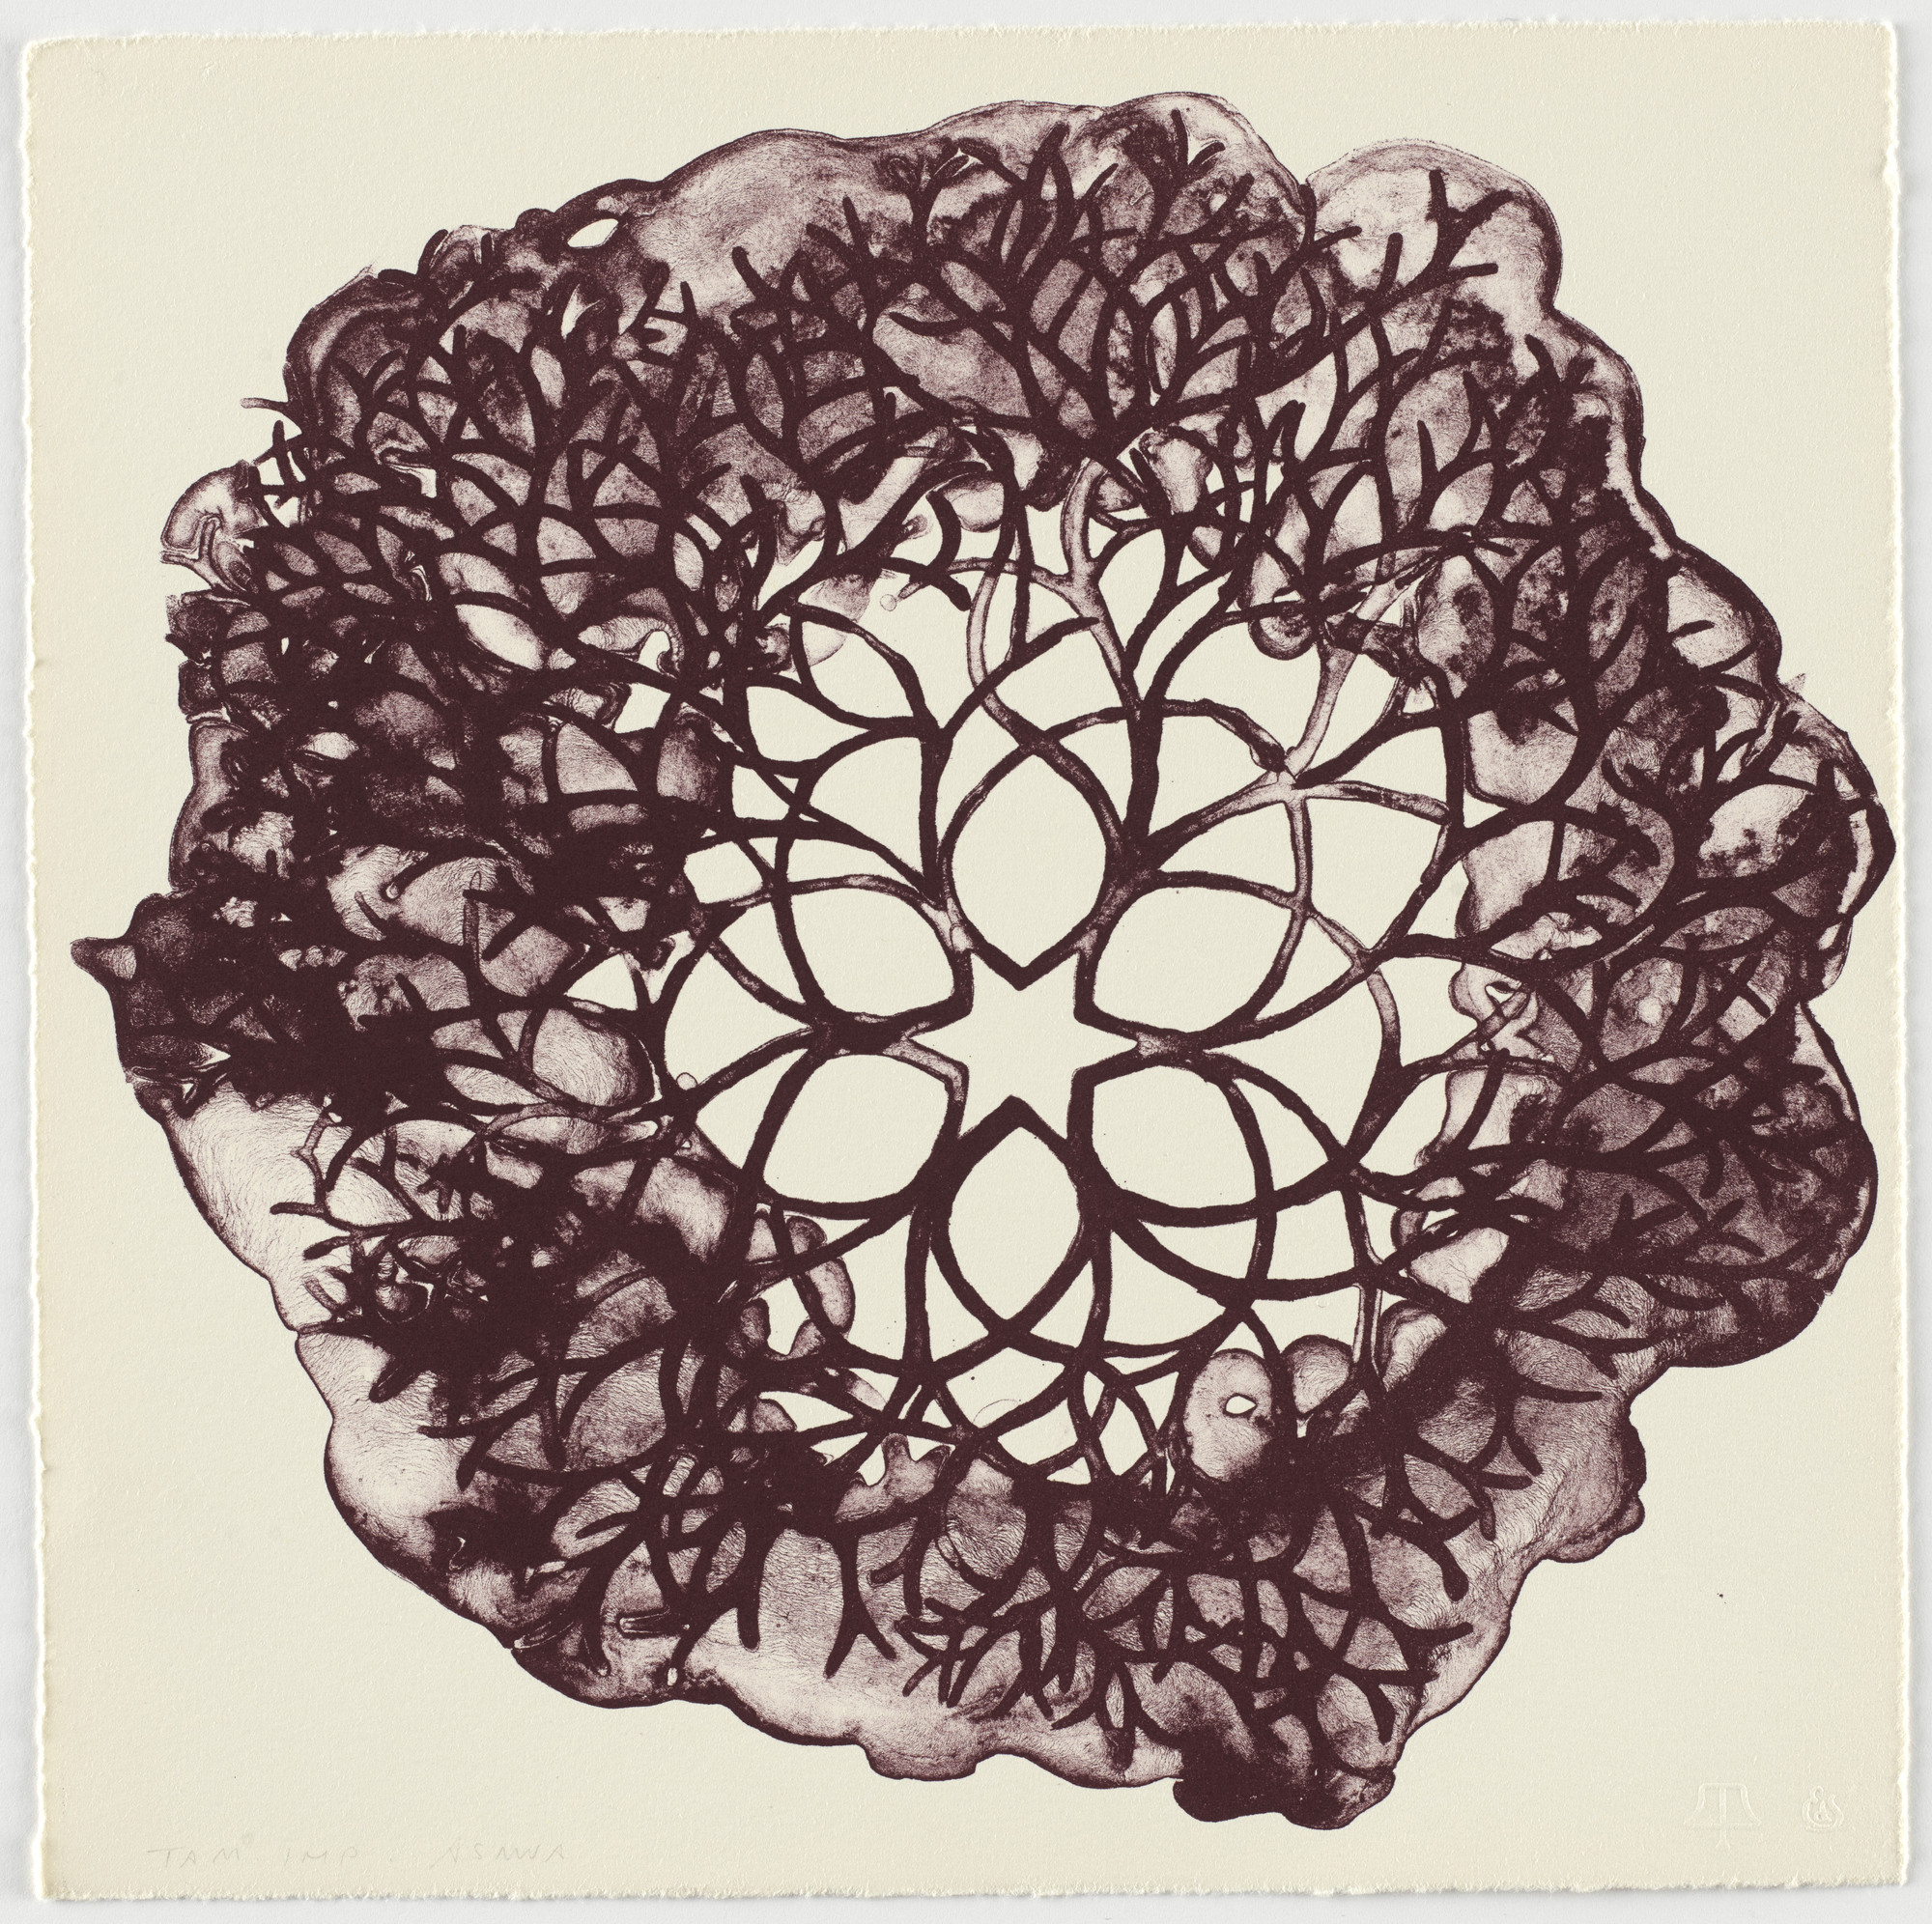 Ruth Asawa. Untitled from Flowers. 1965 | MoMA